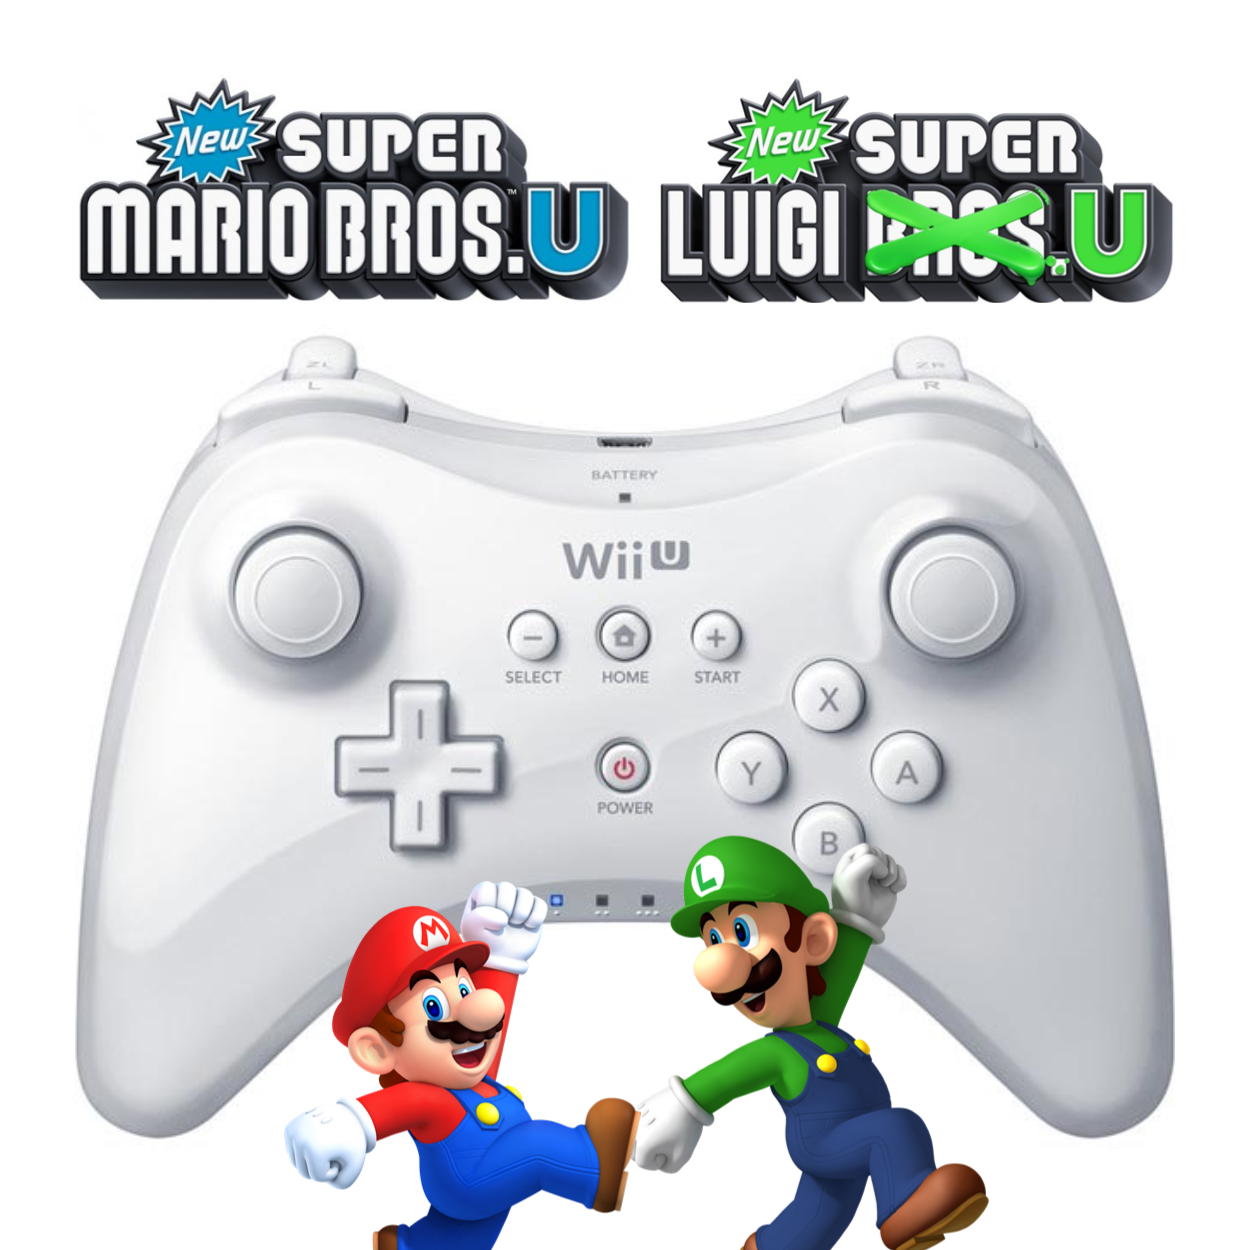 Pro Controller Support Coming To New Super Mario Bros U New